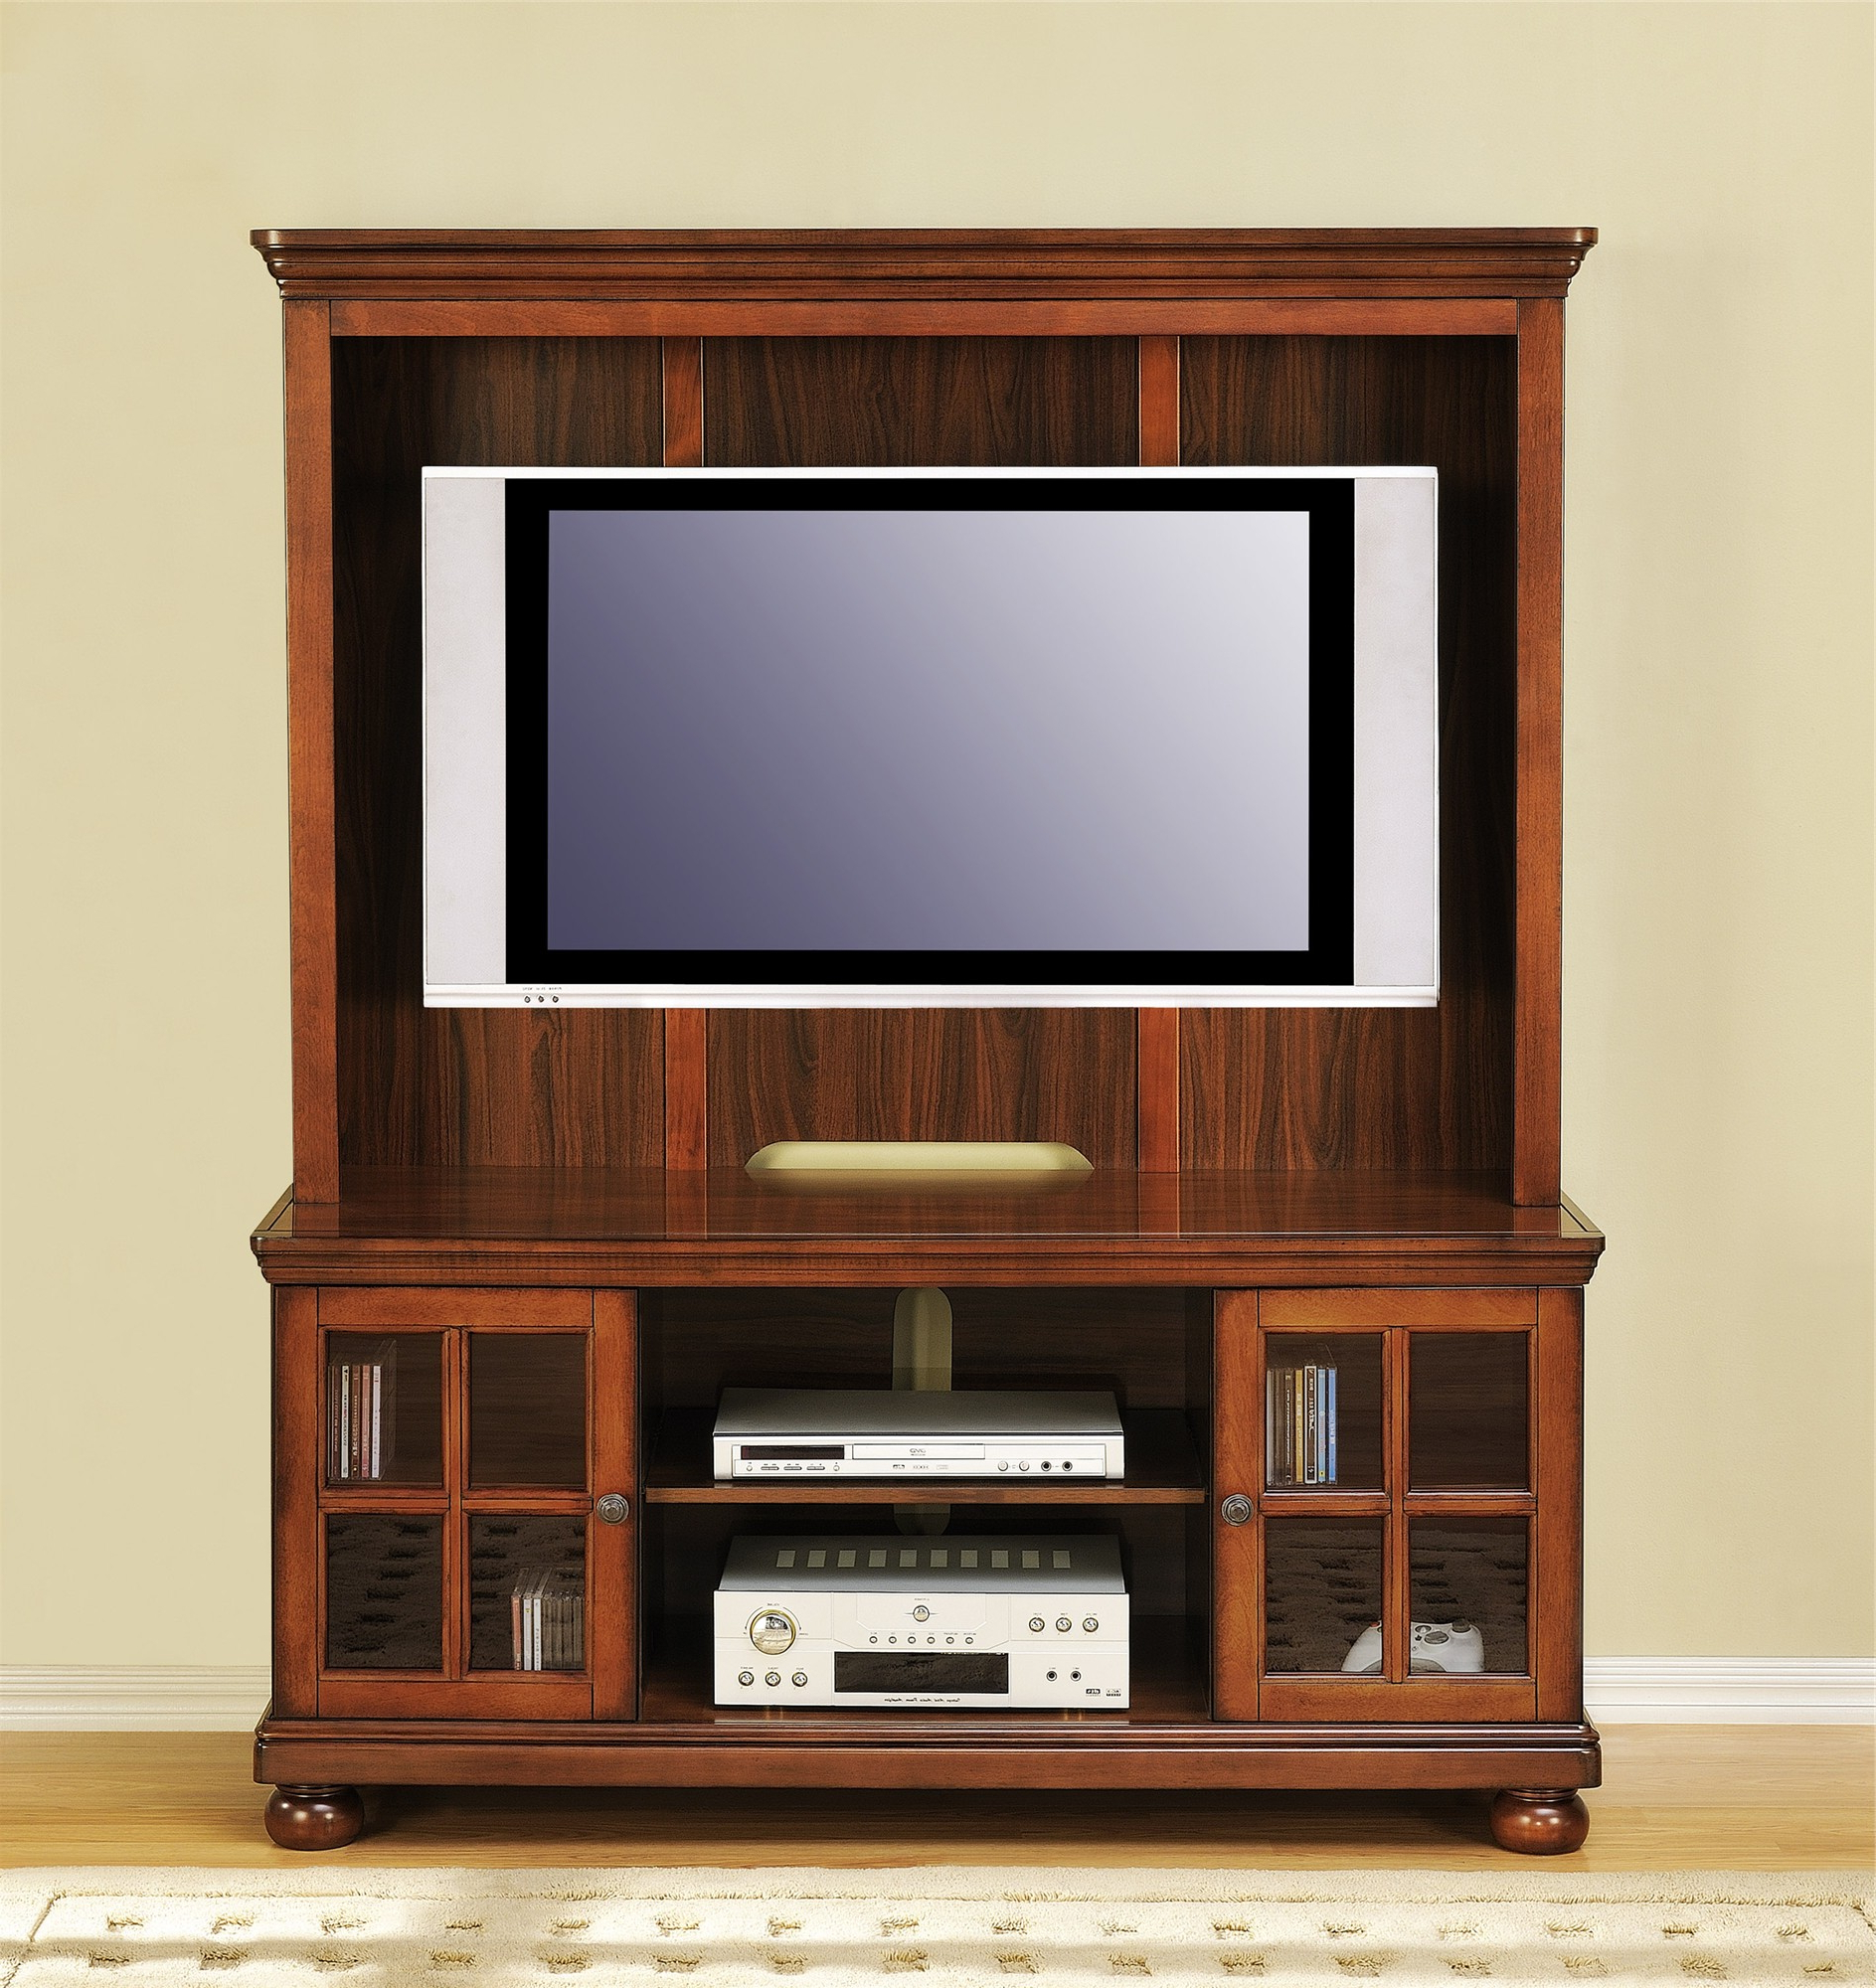 Wall Mounted Tv Stands For Flat Screens Intended For Fashionable Tv Stand Design Ideas Costco Stands For Flat Screens Home Furniture (View 7 of 20)